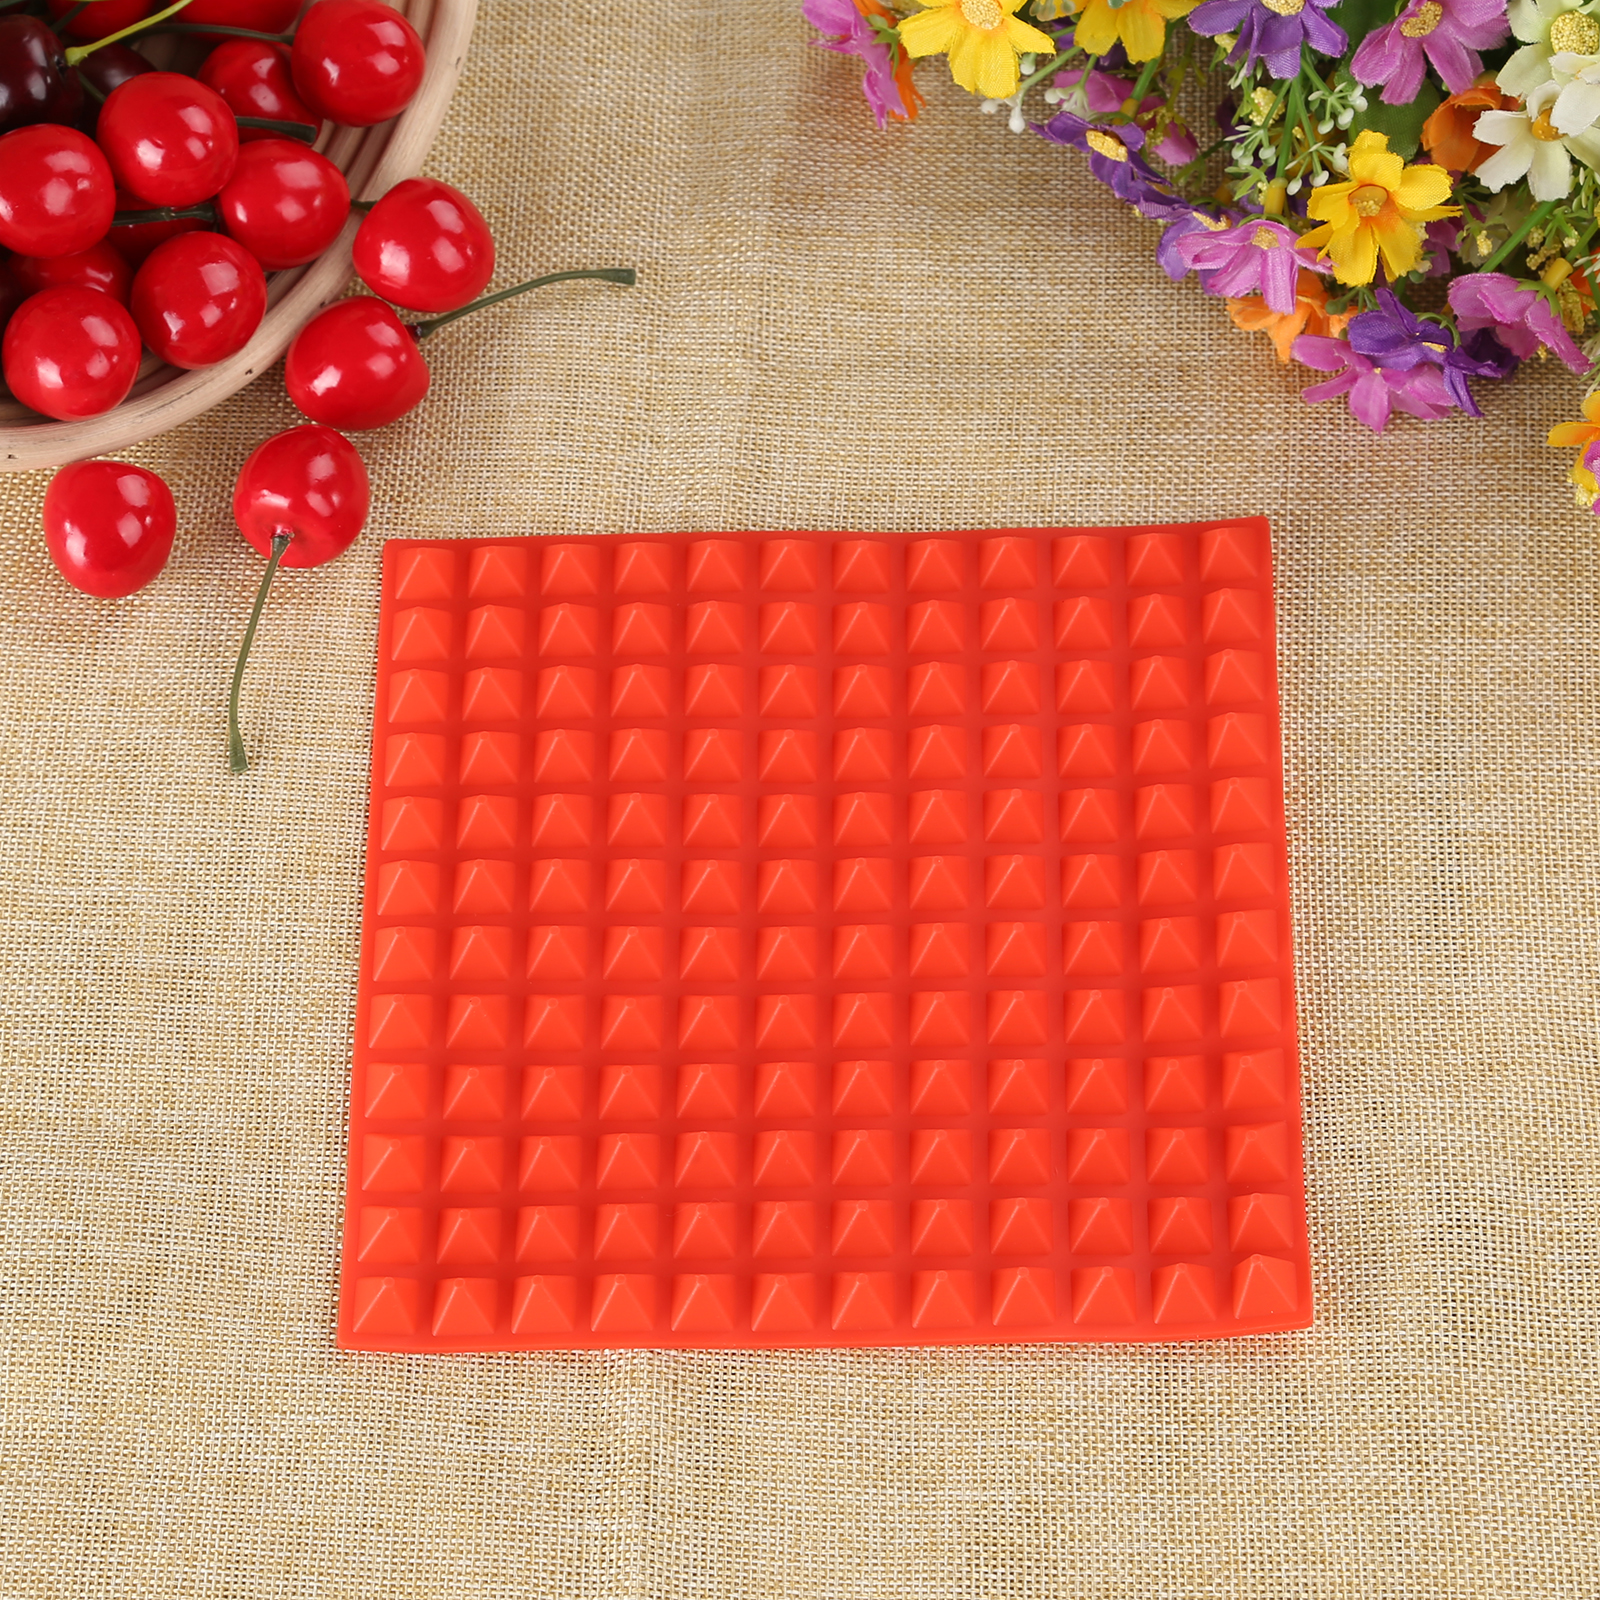 3 Colors Silicone Baking Mat In Non Toxic And High Temperature Resistance For Chocolate And Jelly Pudding 14